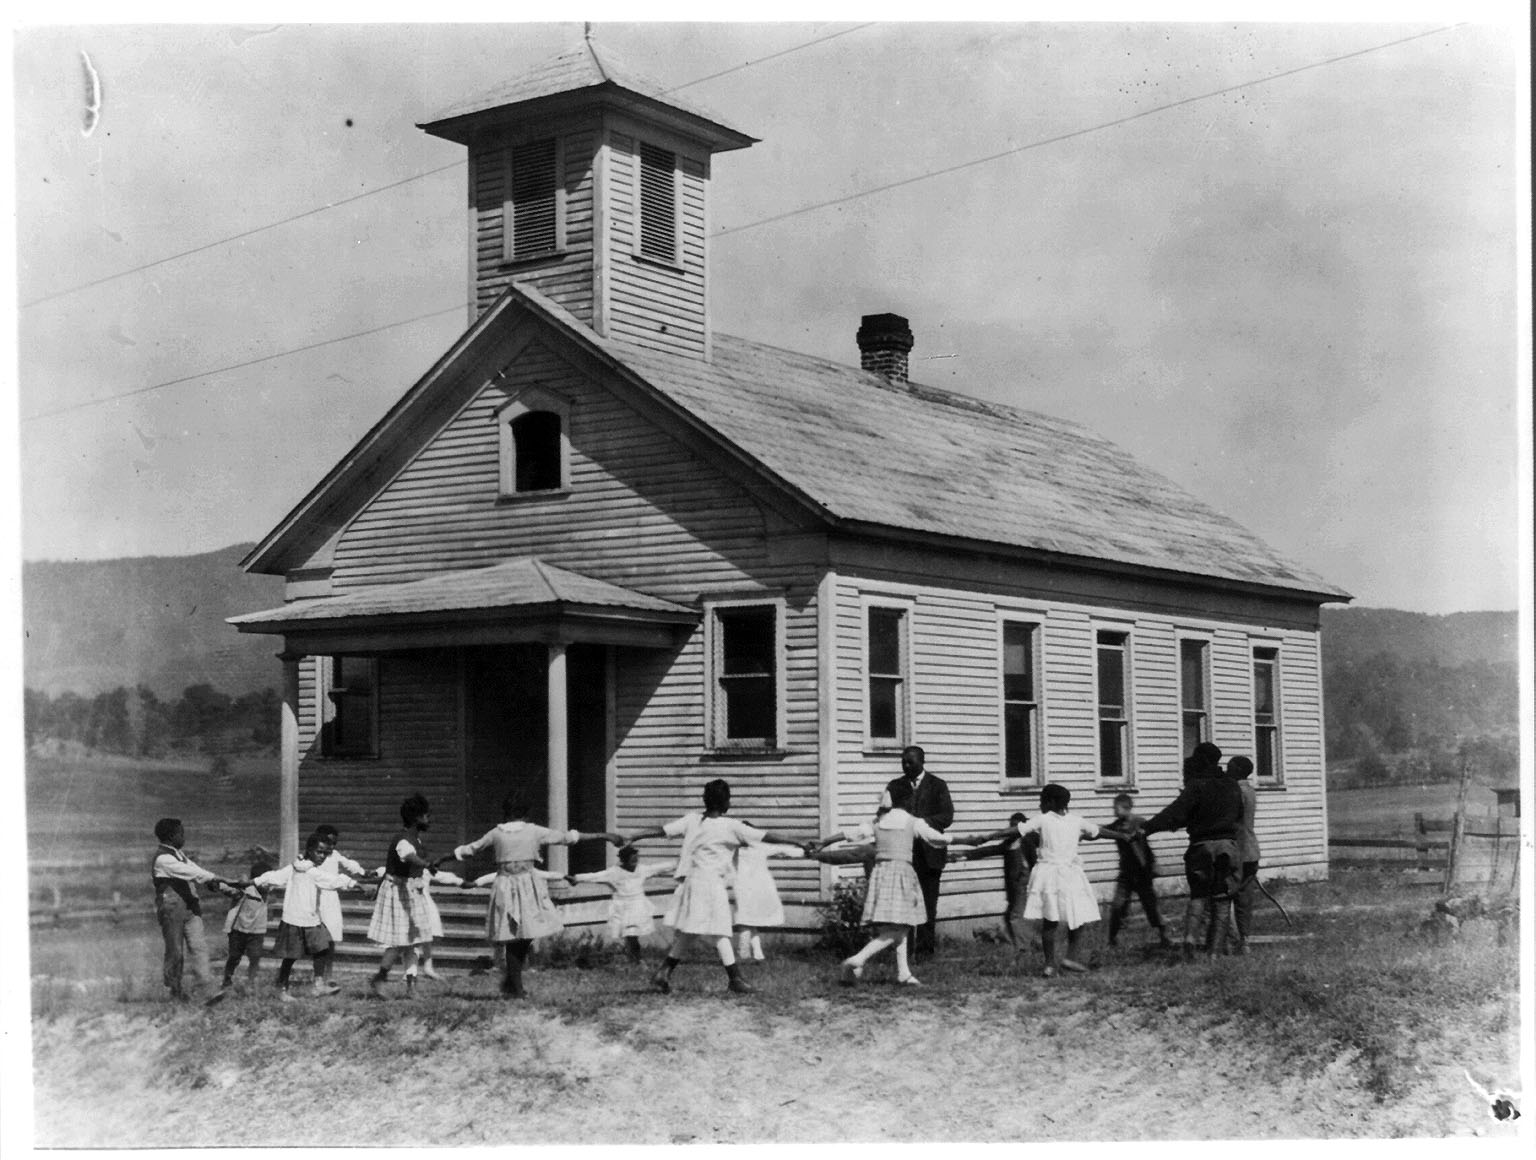 Old schoolhouses on pinterest old school house schools and the old - The modern apartment in the old school ...